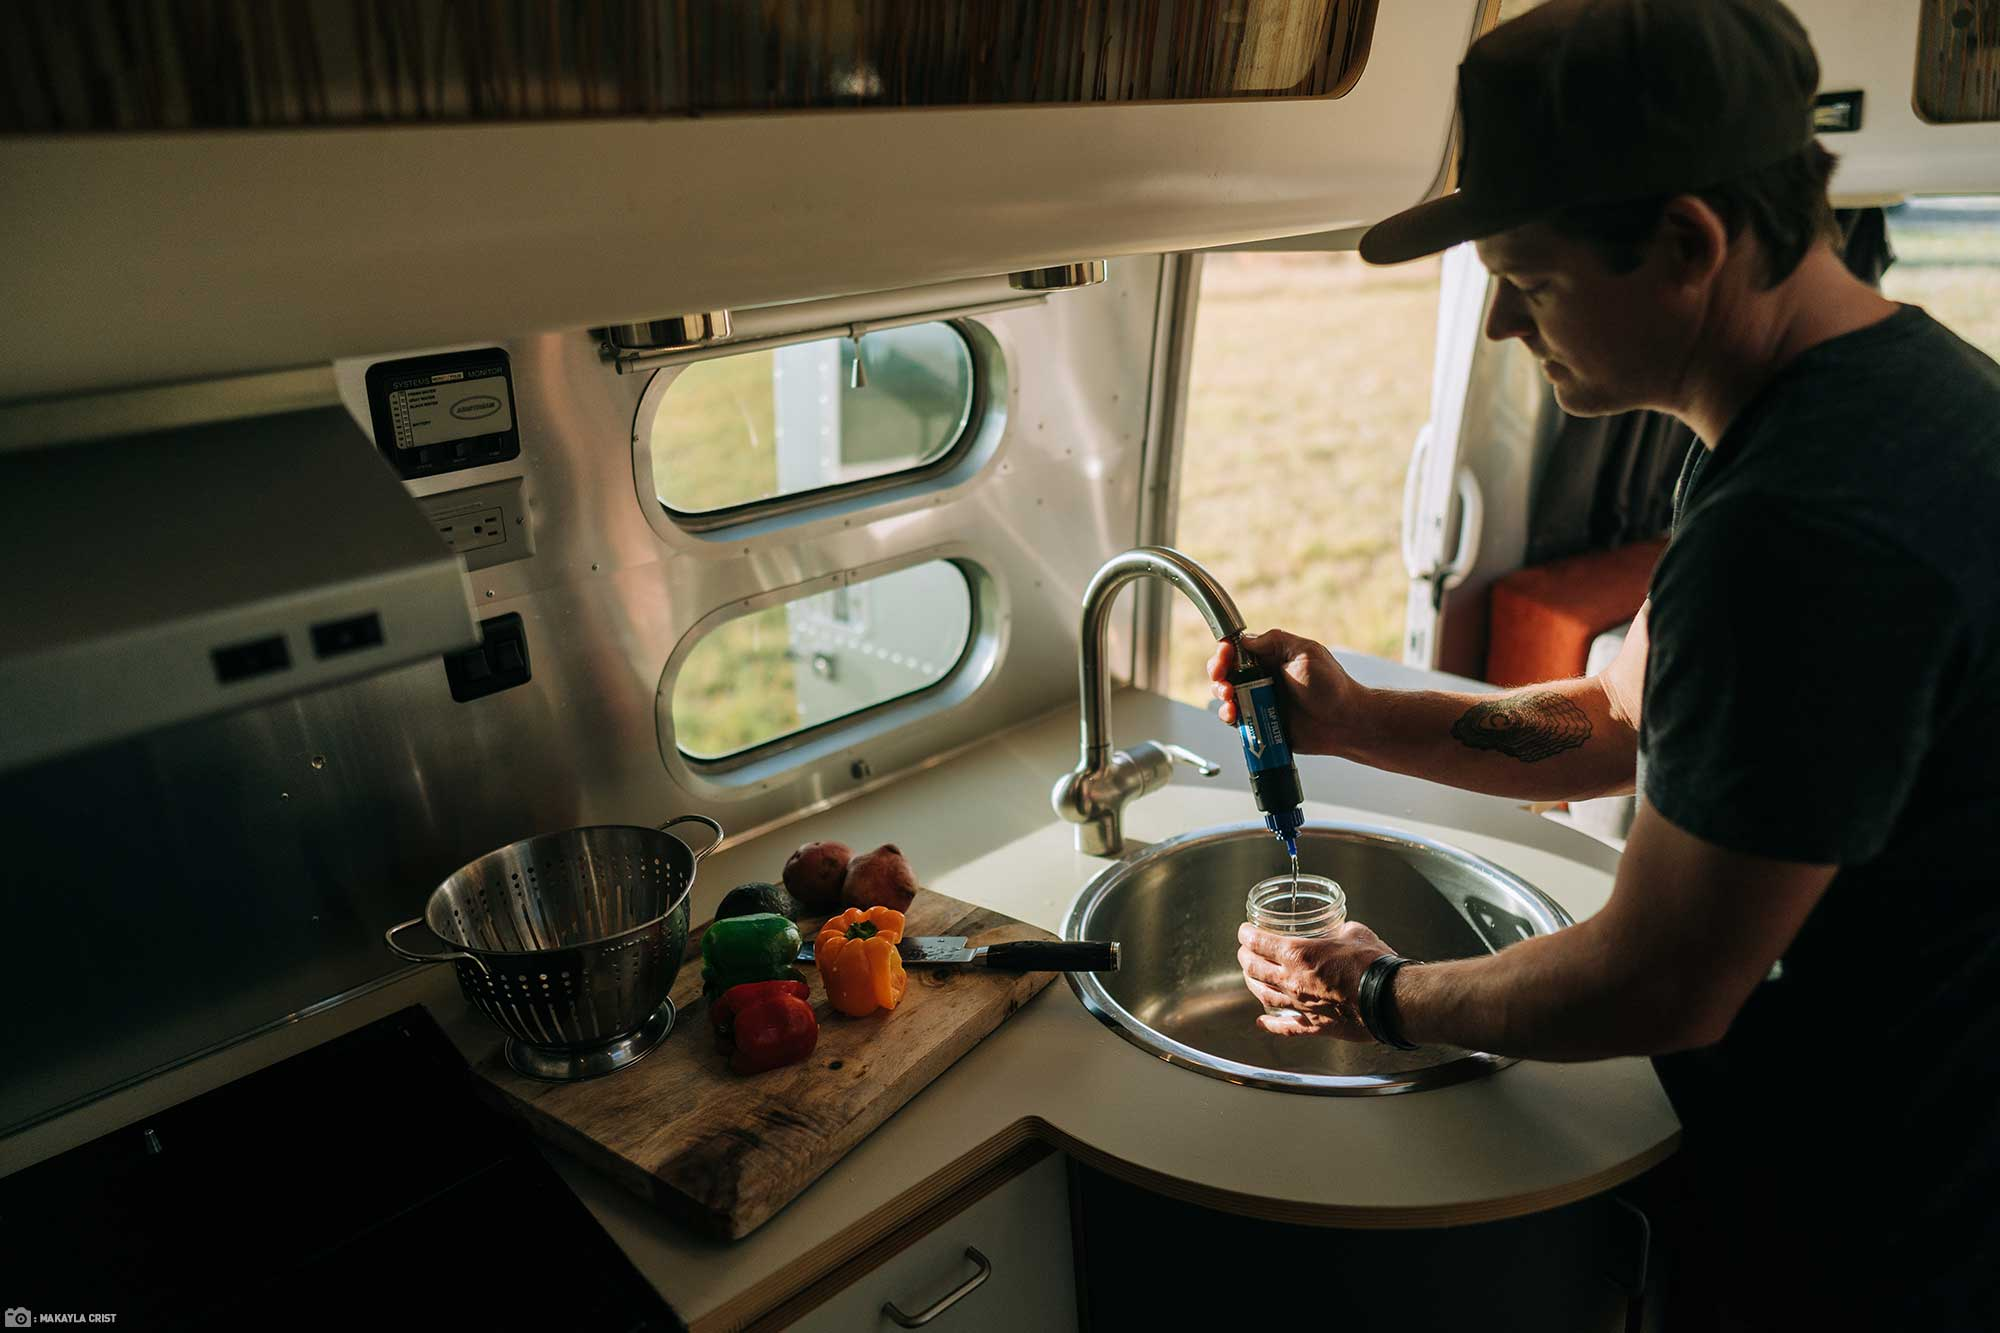 Wider View of Sawyer Tap Filter on RV tap while cooking dinner